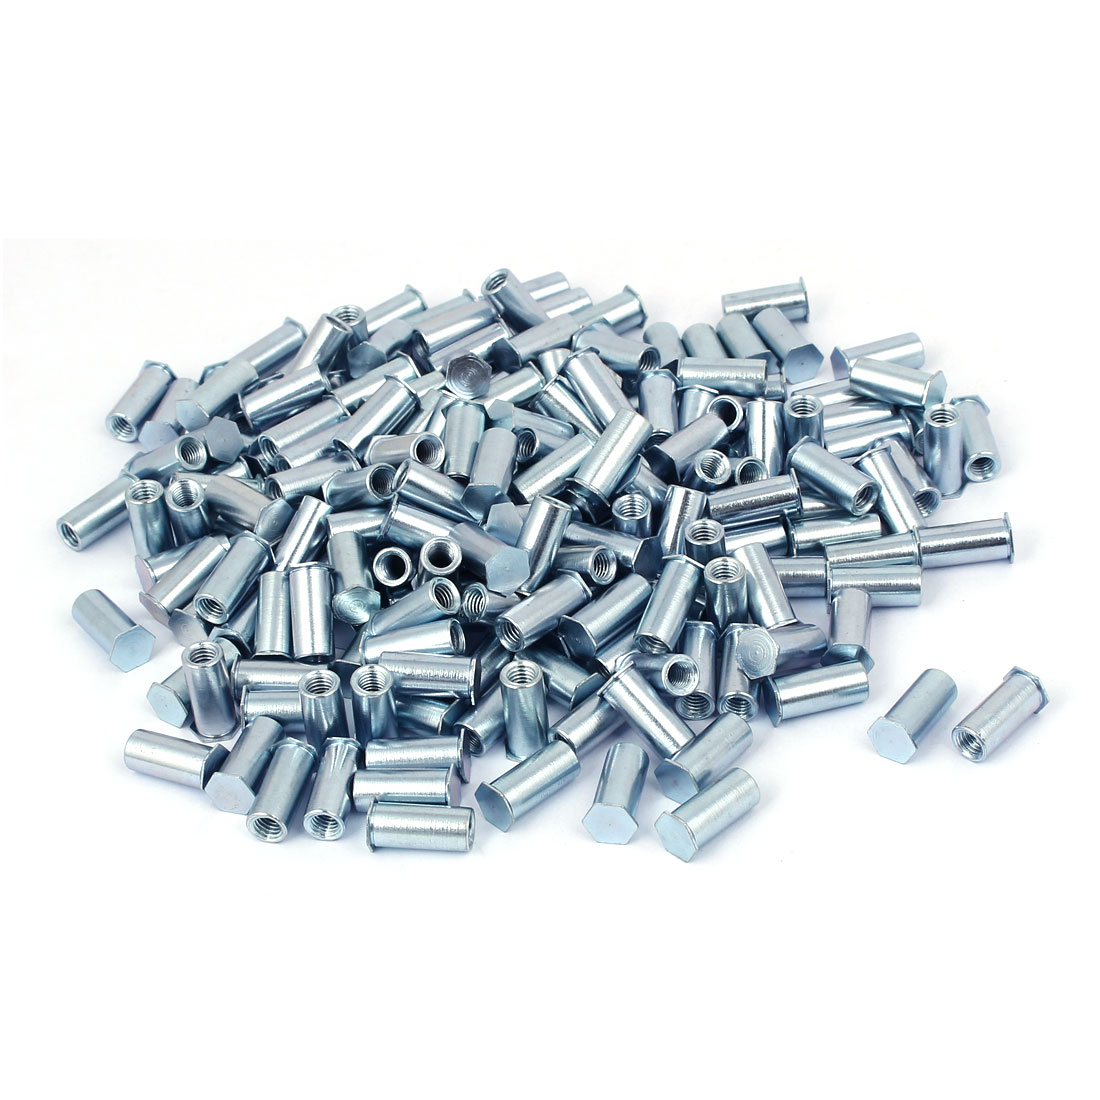 M5 x 18mm Full Thread Zinc Plated Blind Hole Self Clinching Standoffs 200 Pcs